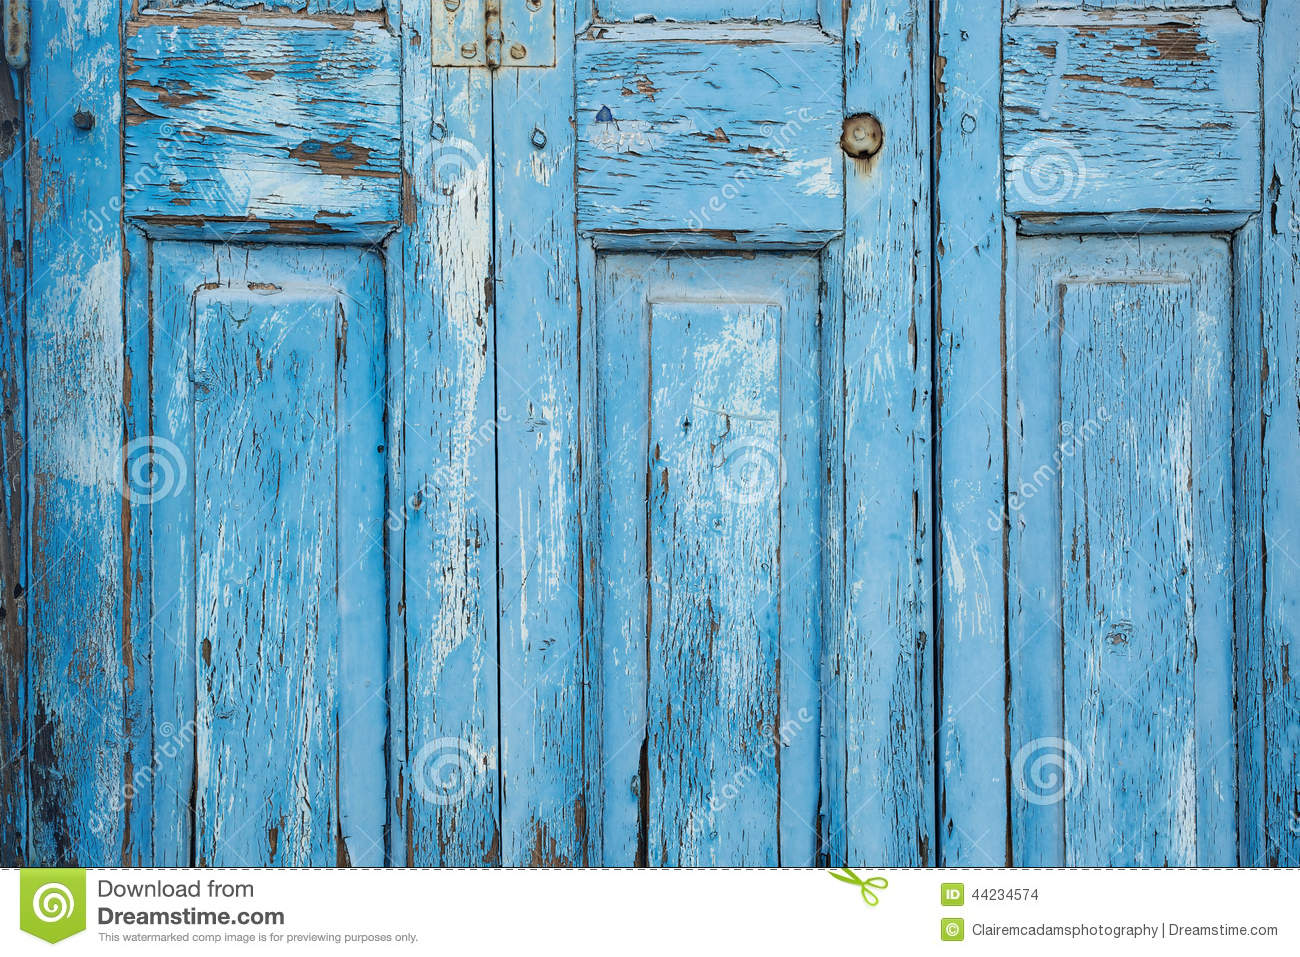 Blue Paint Peeling Off Door Texture Stock Photo Image 44234574